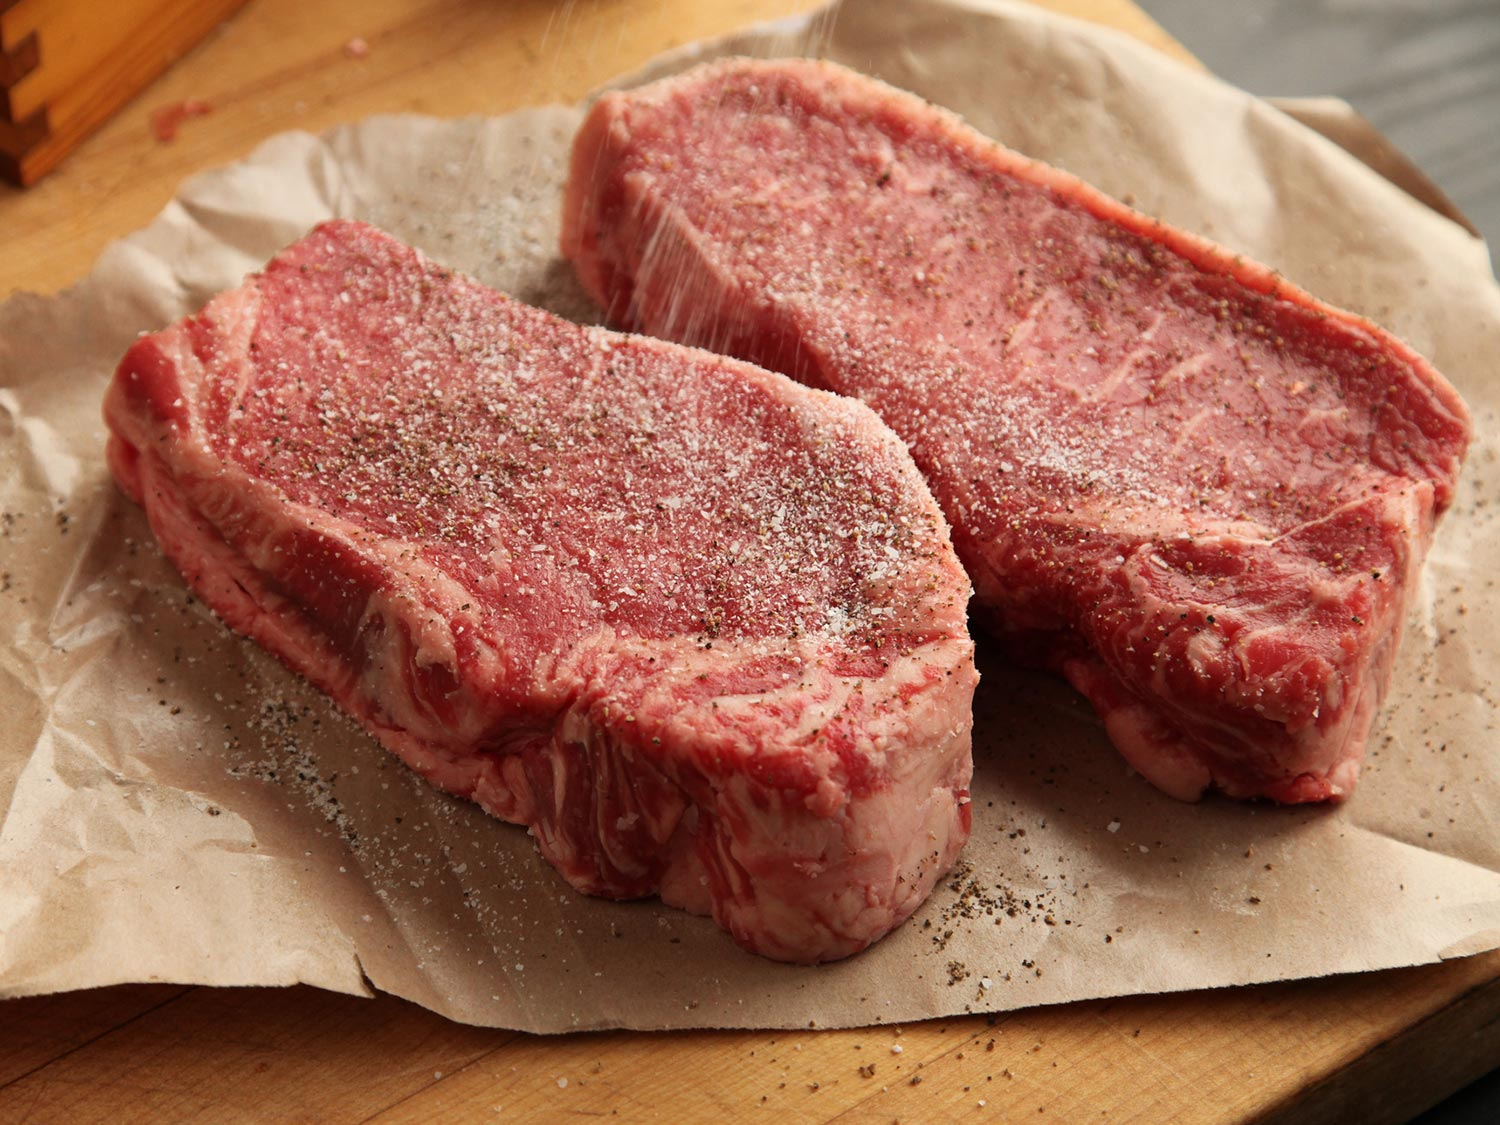 20170217-reverse-sear-steak-07.jpg